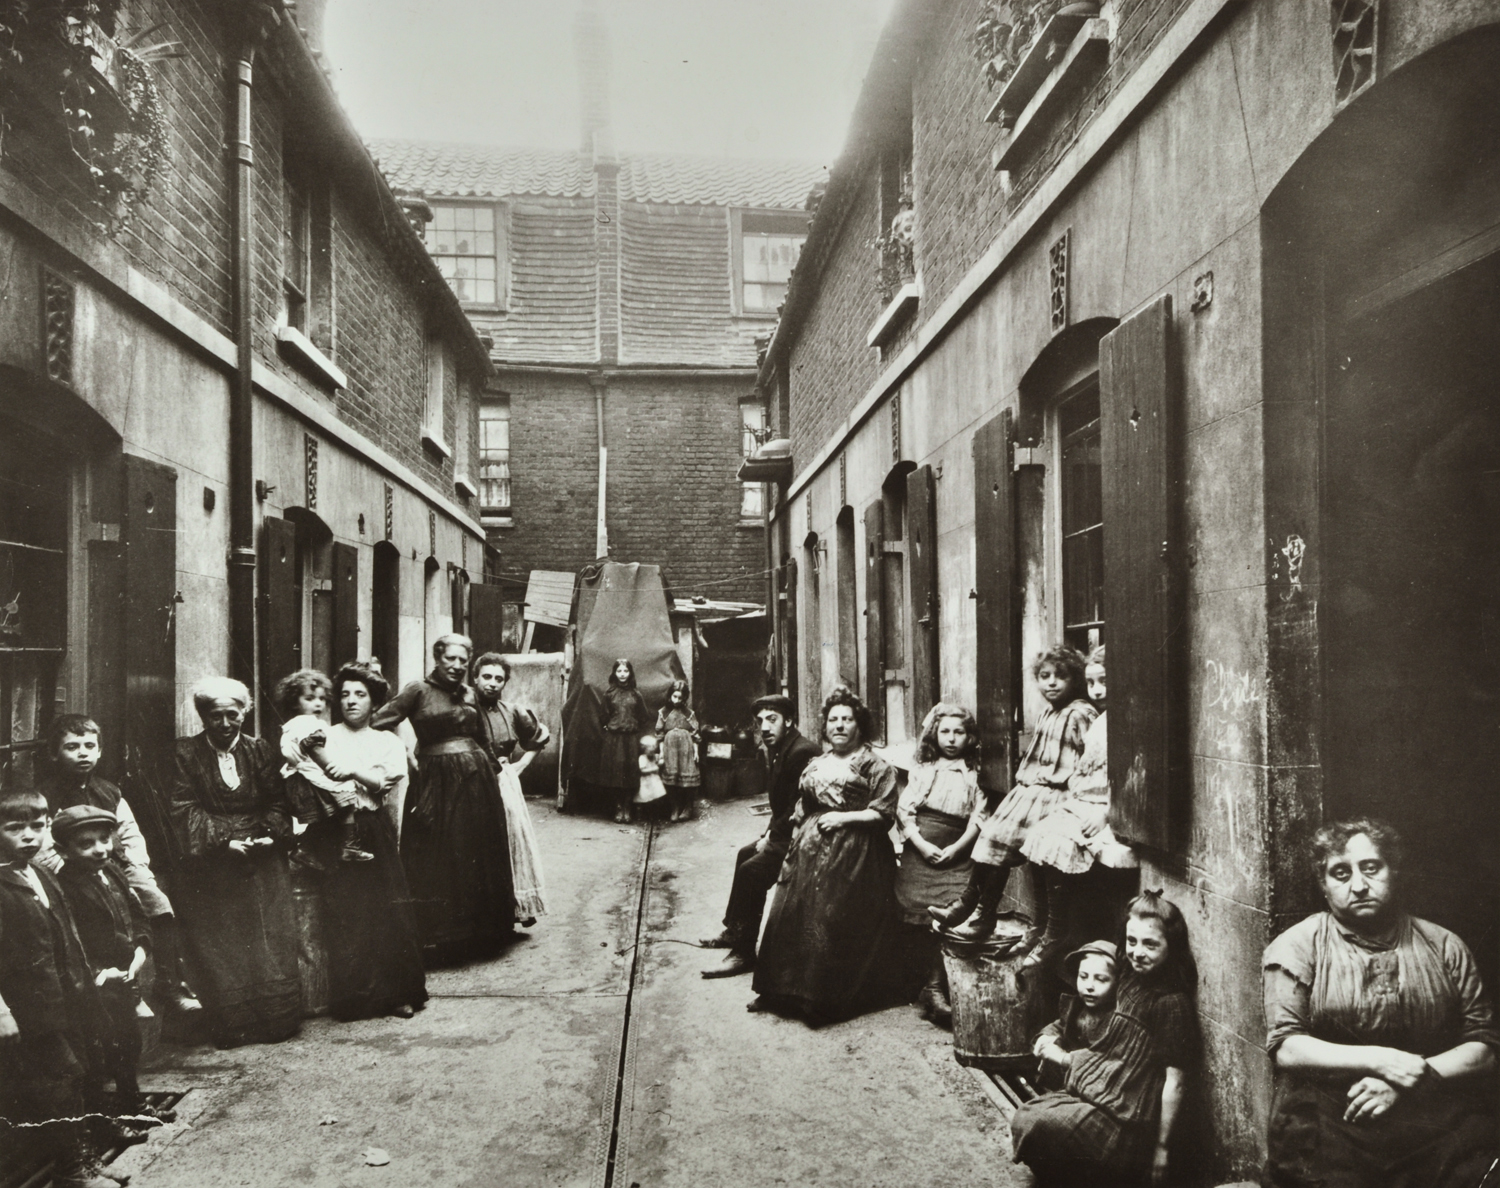 the life in rio in 19th century in aluisio azevedos the slum Britain - changing lives titus salt was a mid-19th century factory owner who created what was life like in the urban slums of early industrial britain.